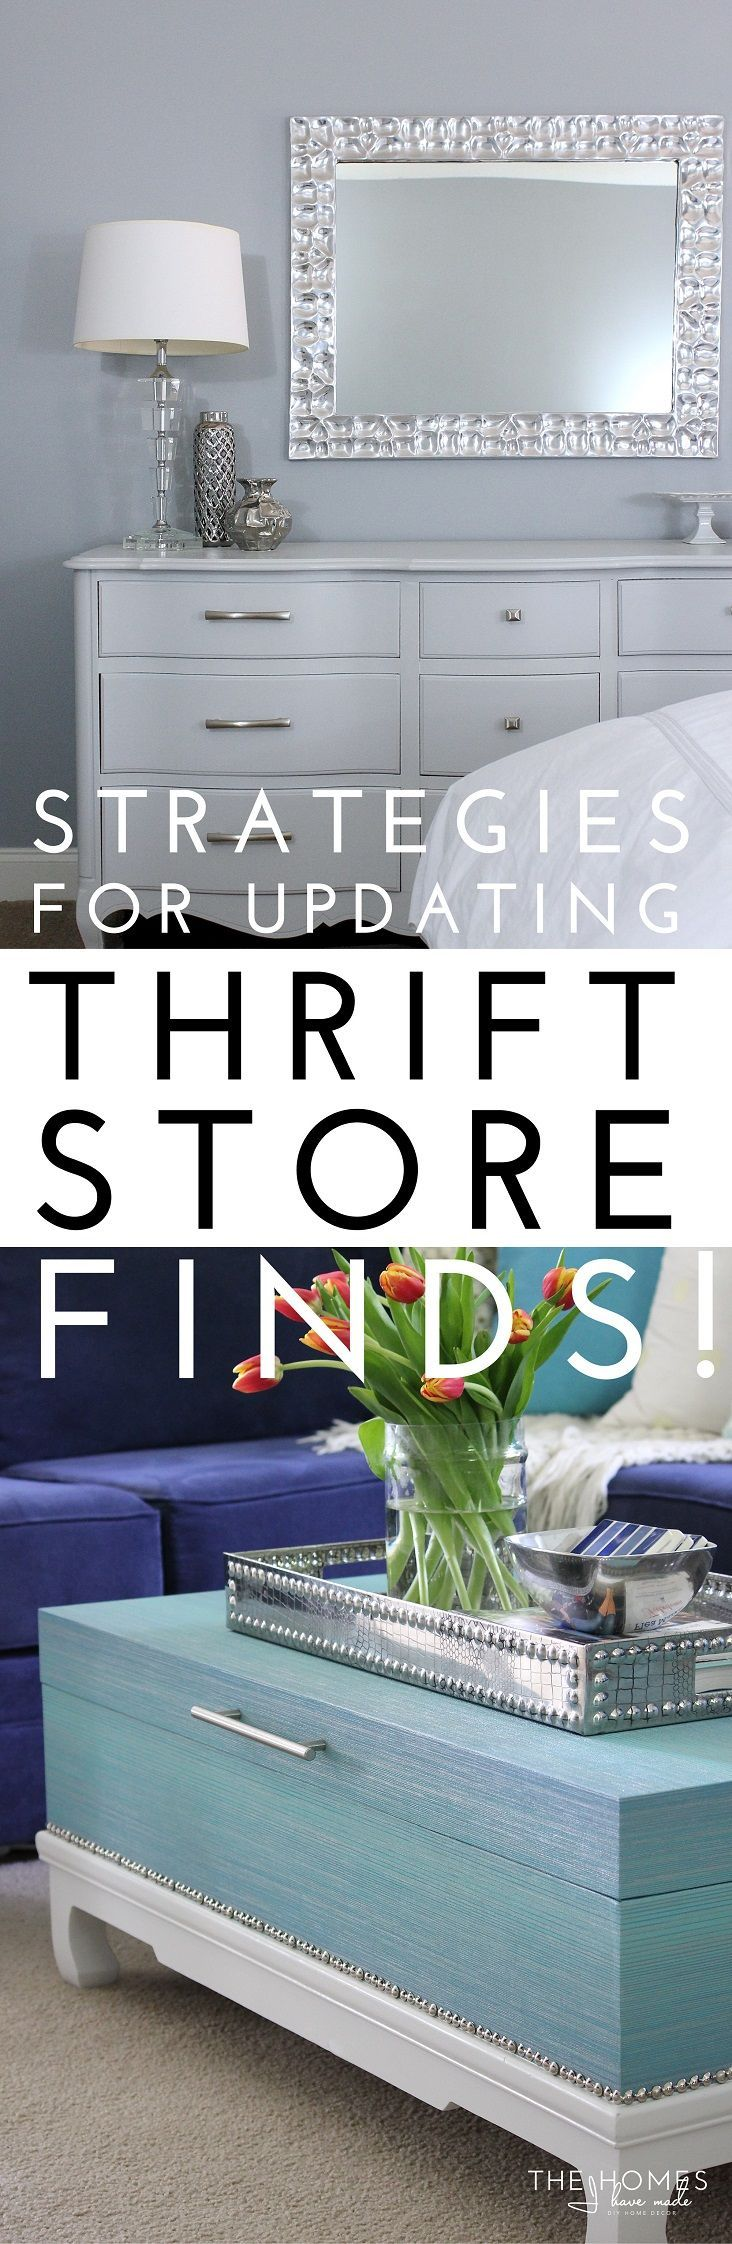 Strategies for Updaing Thrift Store Finds Title Image